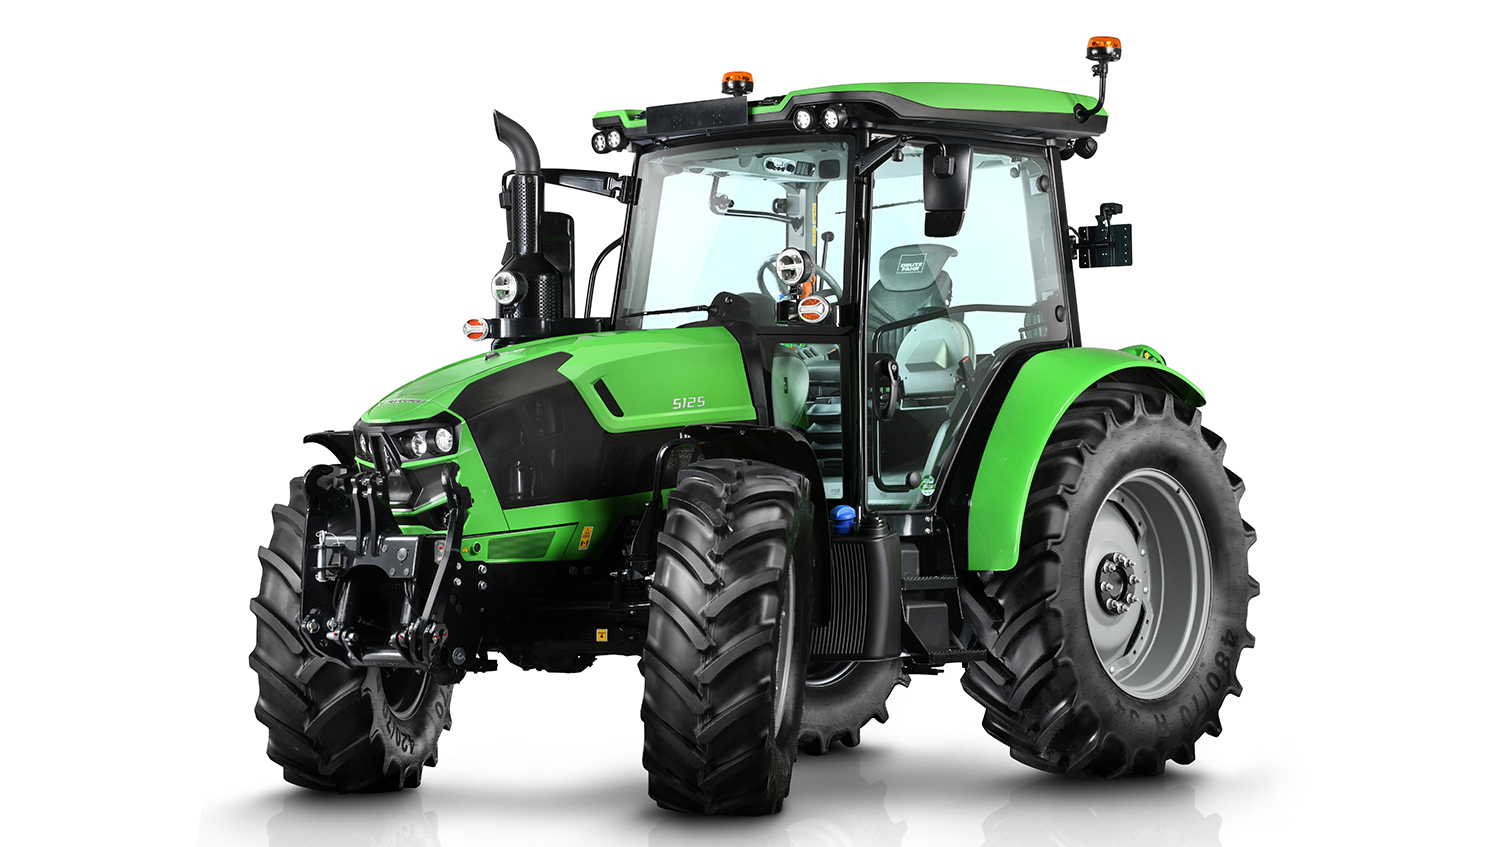 The Deutz-Fahr 5125 sits at the top of the brand's new 5 Series